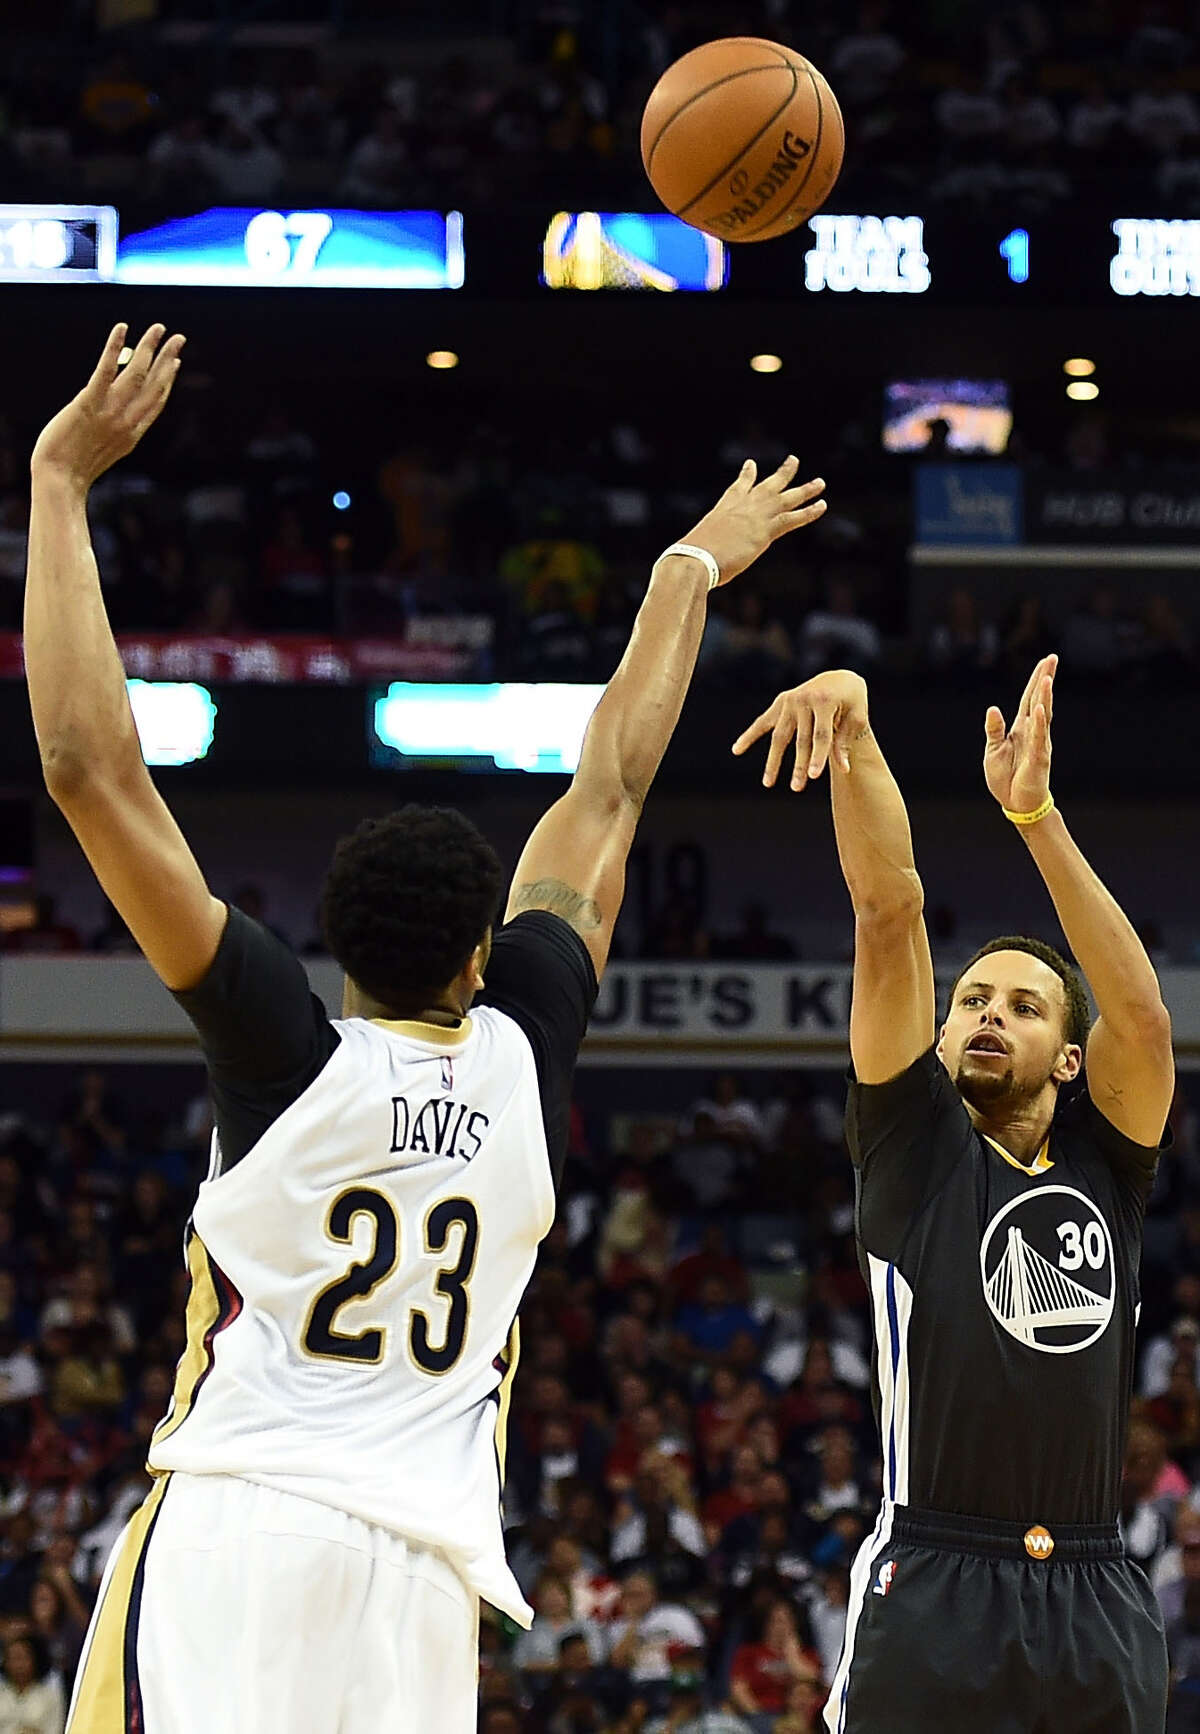 NEW ORLEANS, LA - OCTOBER 31: Stephen Curry #30 of the Golden State Warriors takes a three point shot over Anthony Davis #23 of the New Orleans Pelicans during the second half of a game at the Smoothie King Center on October 31, 2015 in New Orleans, Louisiana. NOTE TO USER: User expressly acknowledges and agrees that, by downloading and or using this photograph, User is consenting to the terms and conditions of the Getty Images License Agreement. (Photo by Stacy Revere/Getty Images)